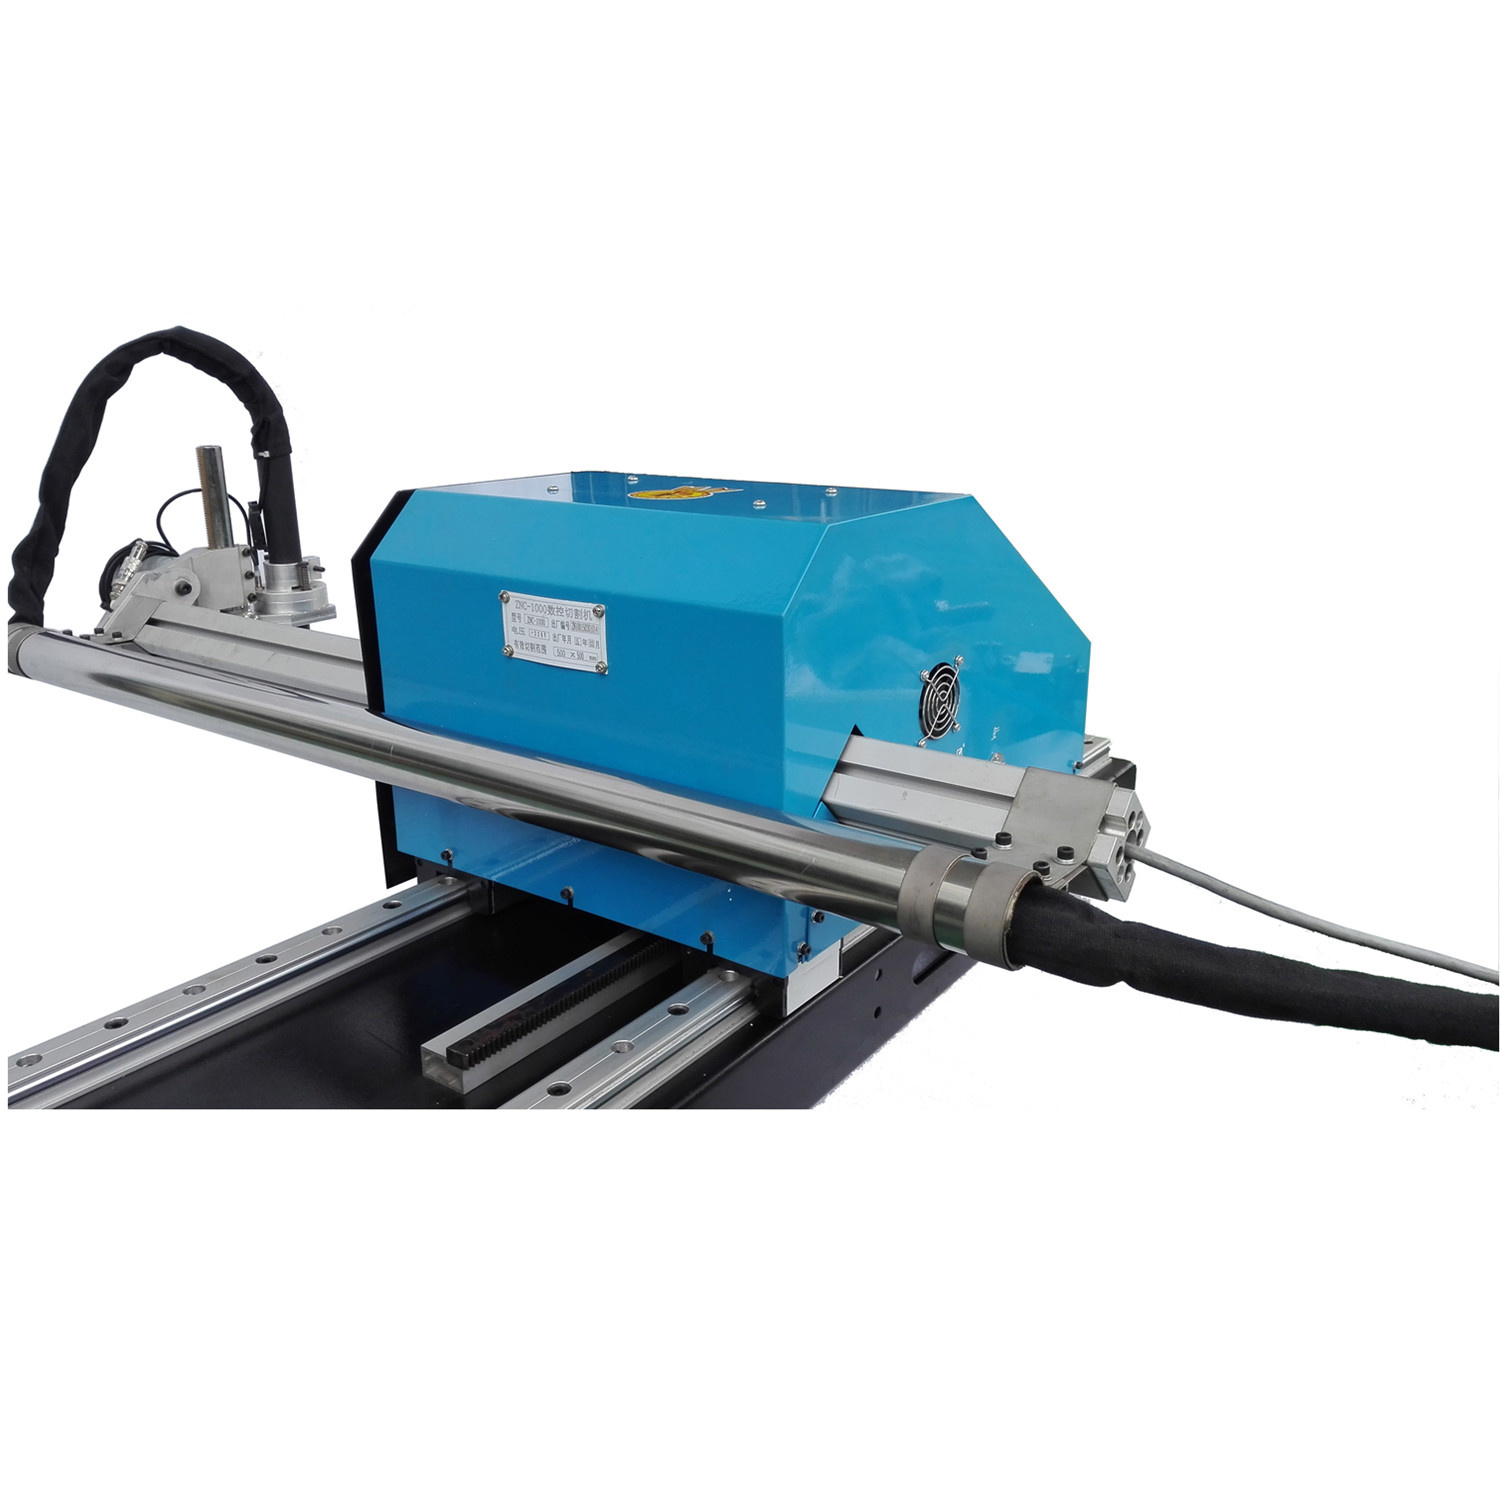 Economic Portable CNC Plasma Cutting Machine Flame Cutting Machine